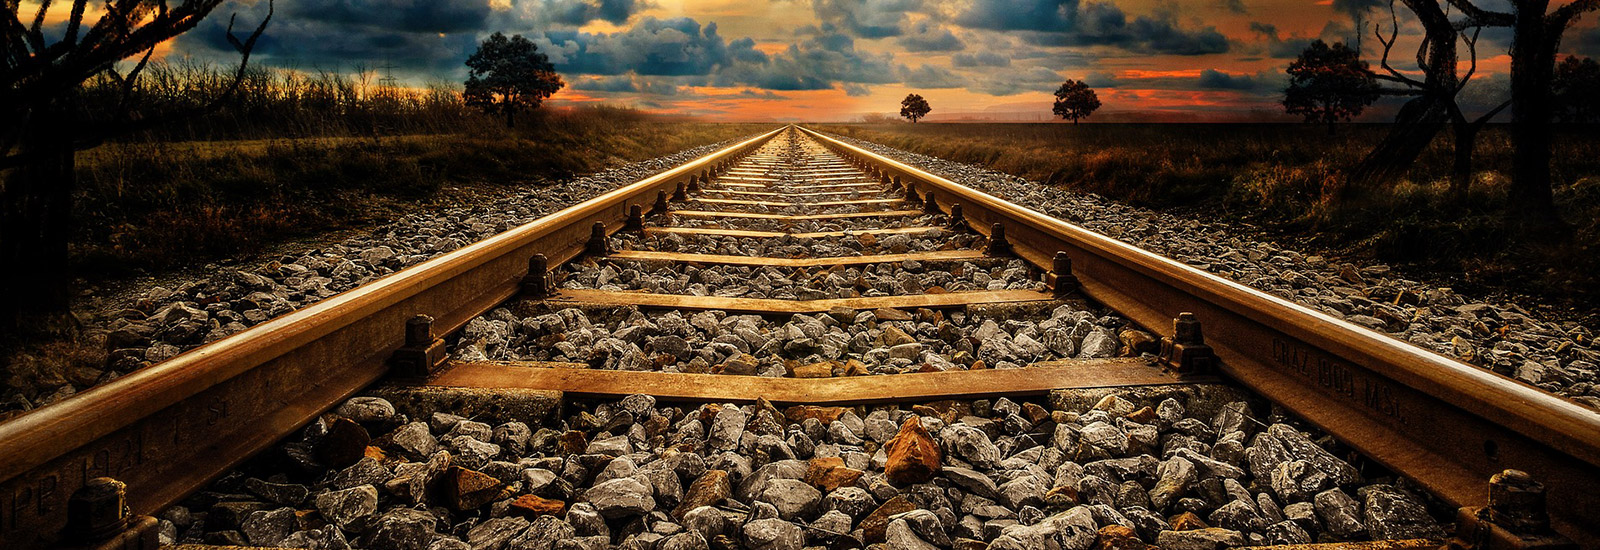 Train tracks off into the distance